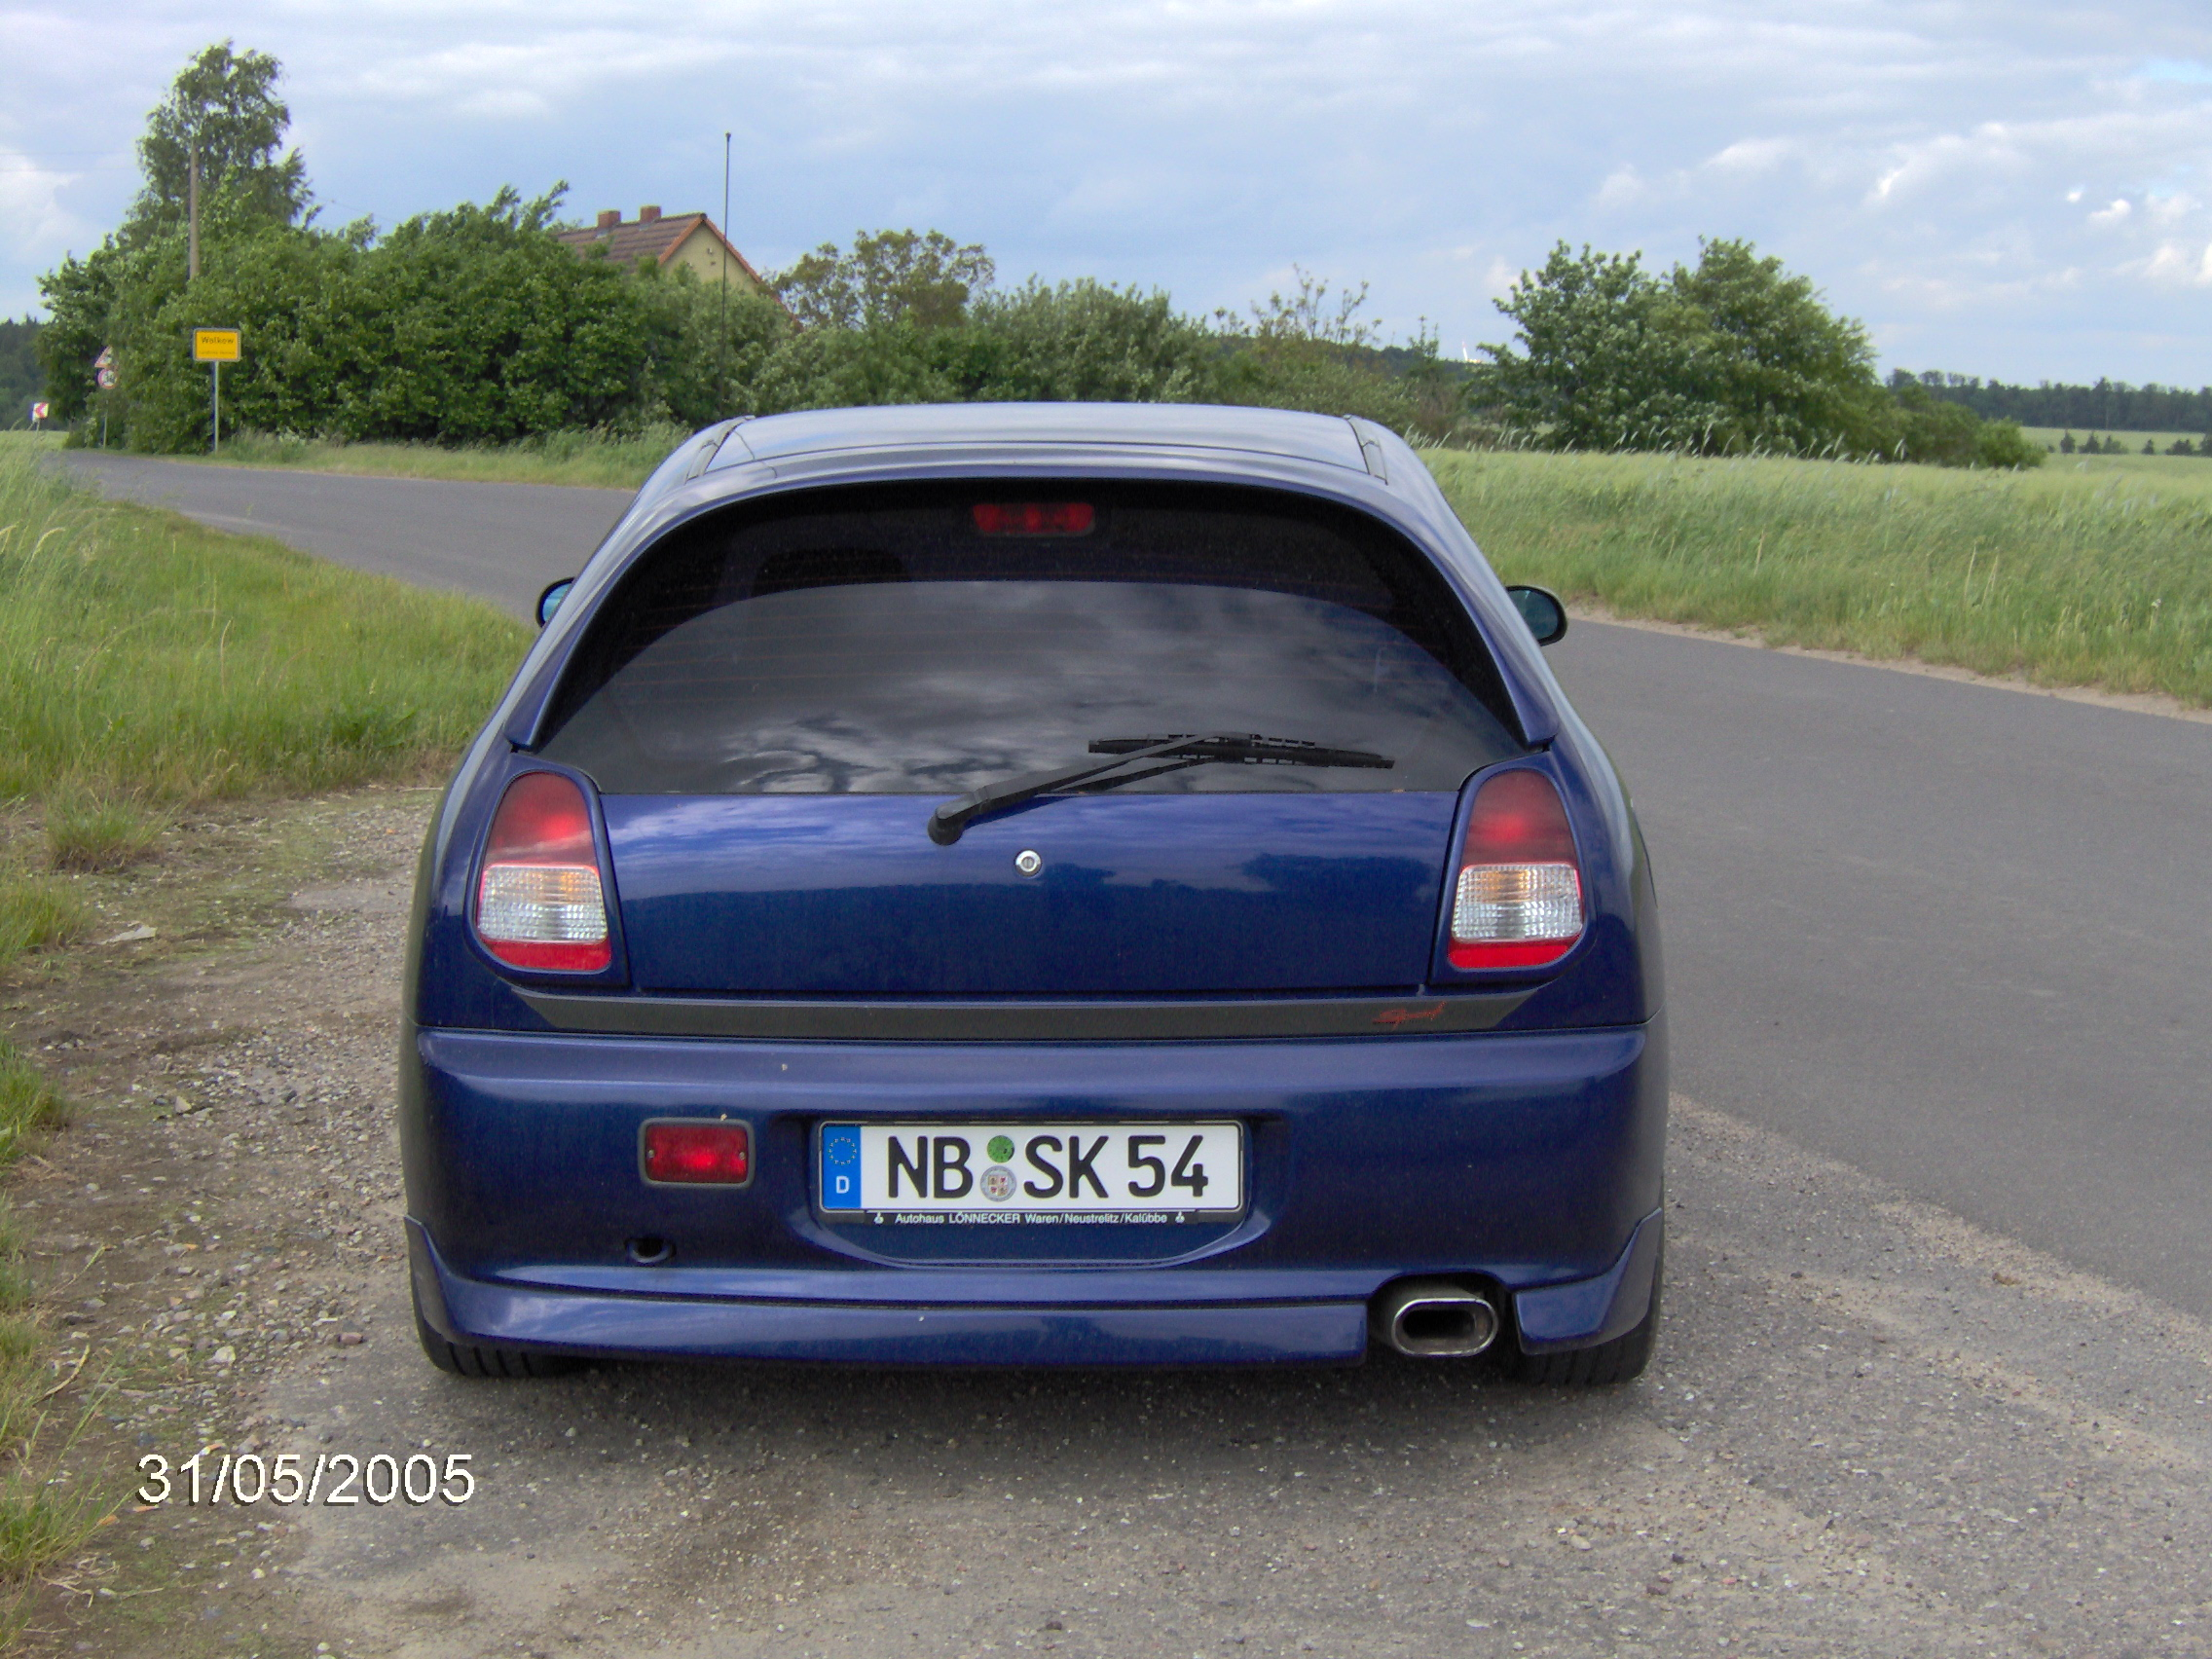 Pictures of mitsubishi colt v (cj_) 1997 #12